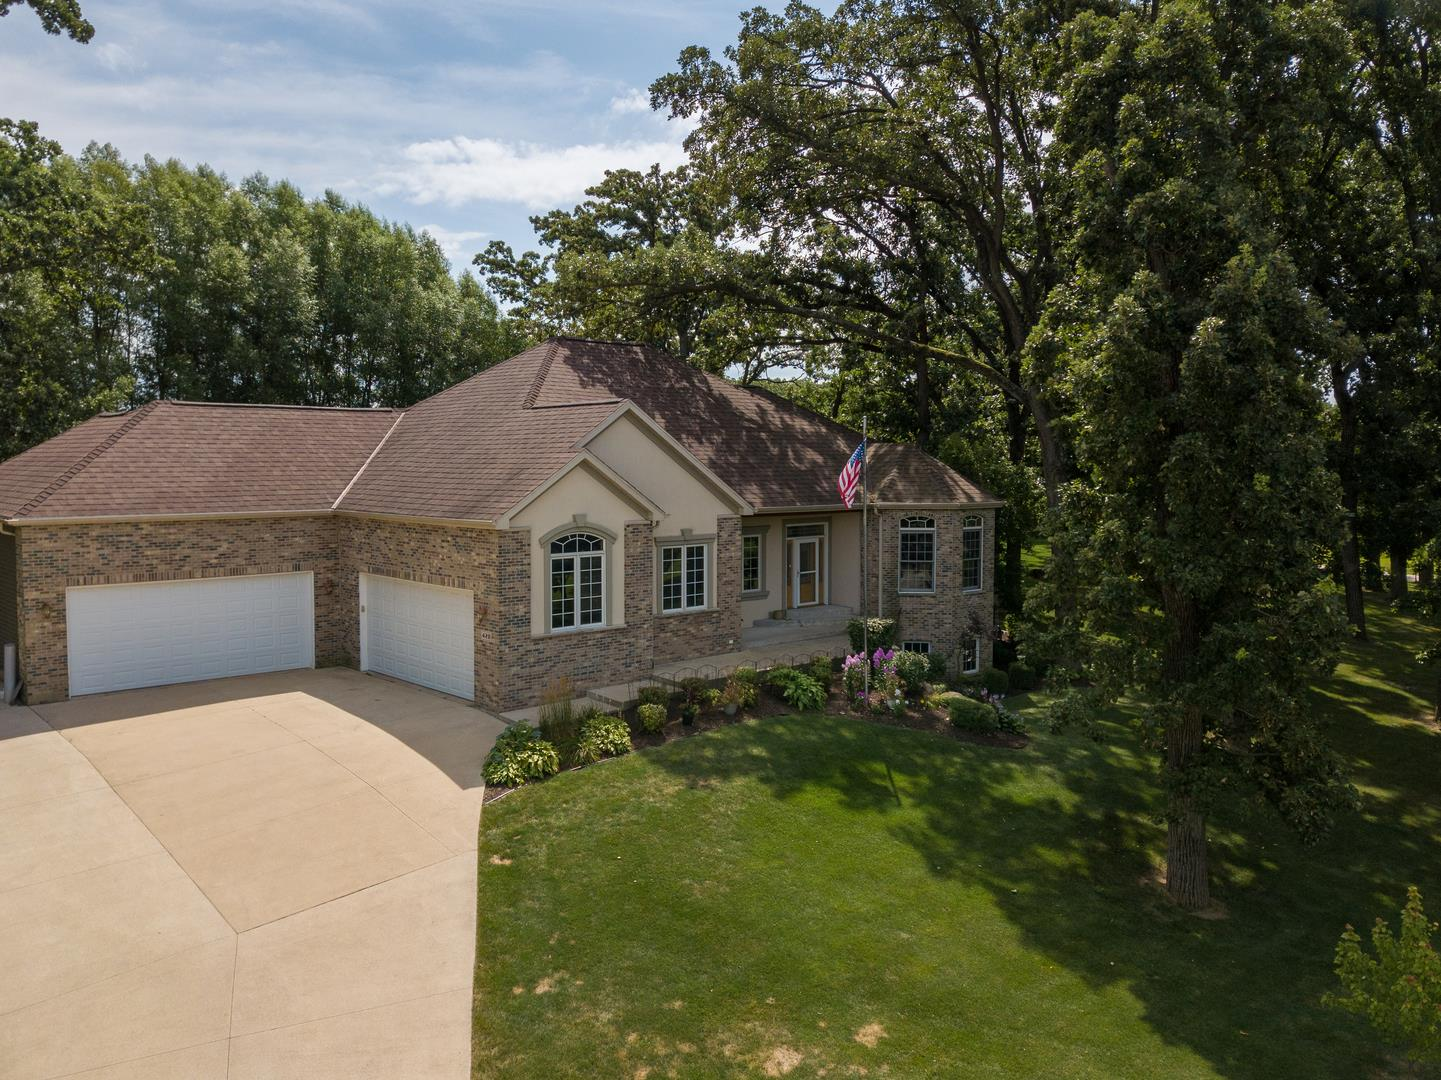 428 Shaded Rue Drive, Poplar Grove, IL 61065 - #: 10819554